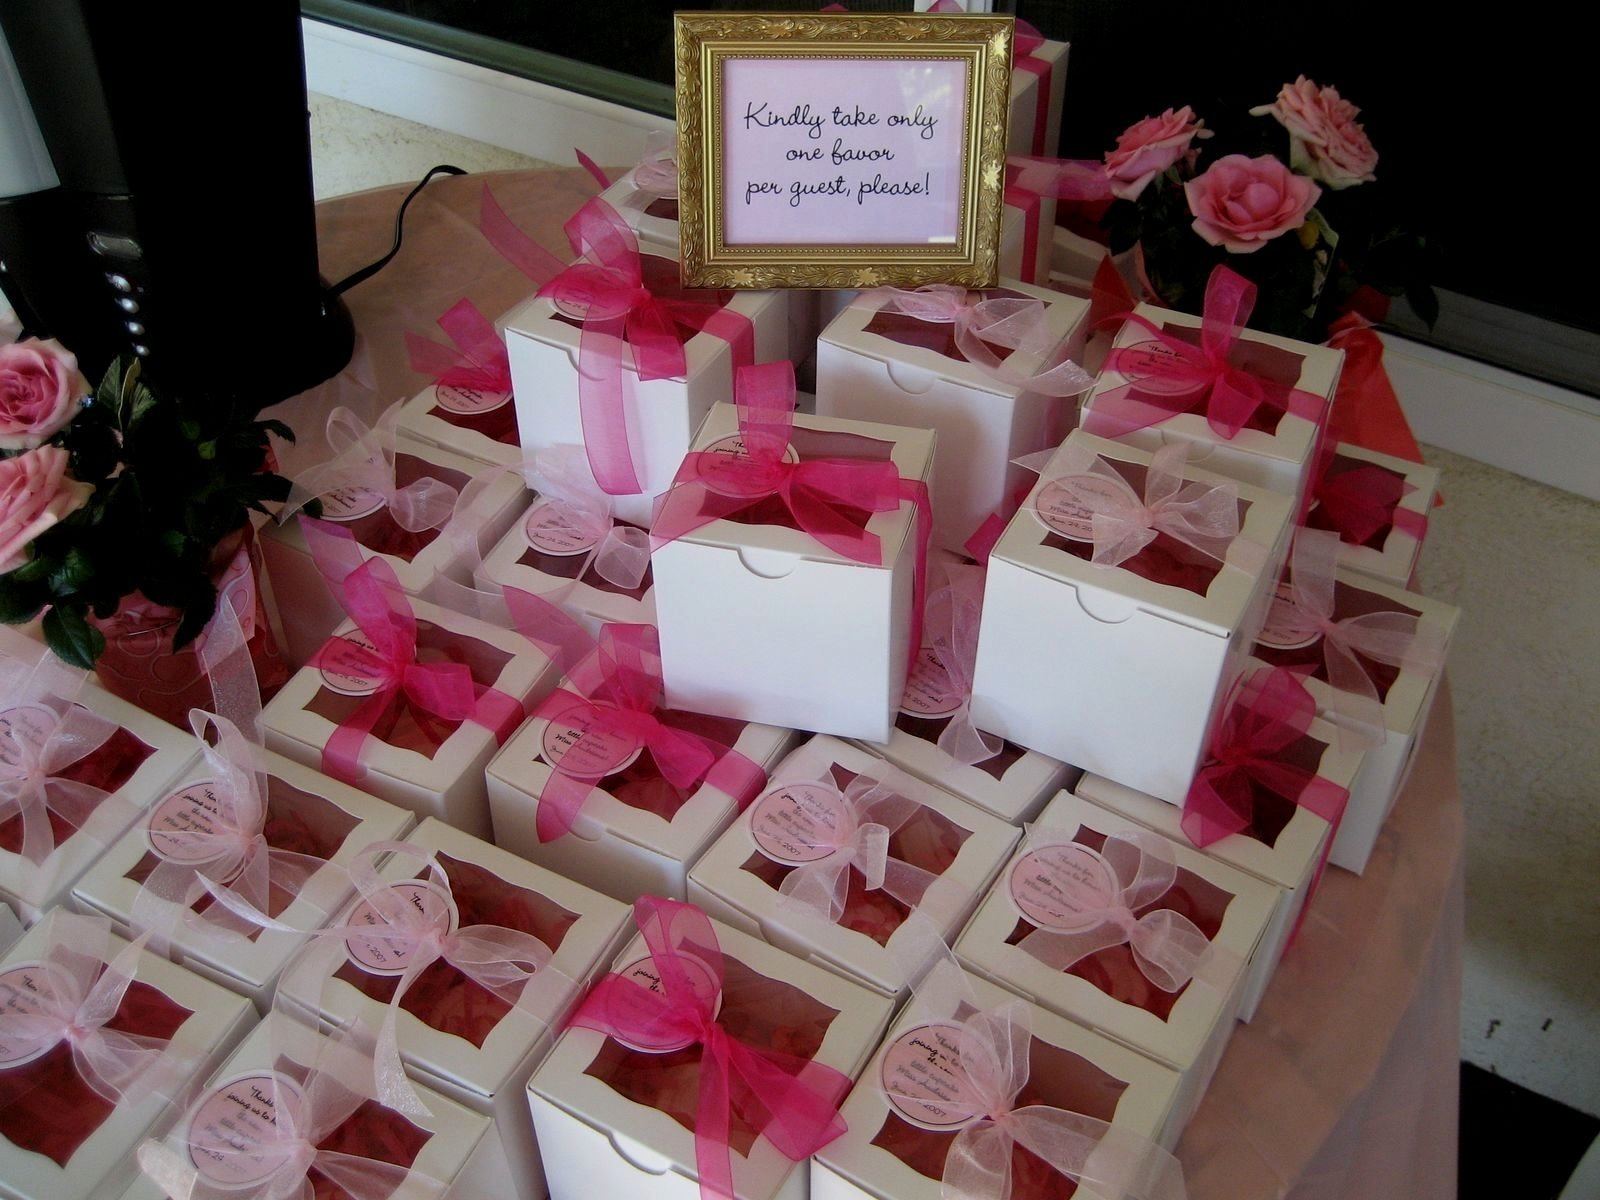 10 Lovable Baby Shower Favors Ideas To Make baby shower baby shower favor ideas for girl baby shower favors